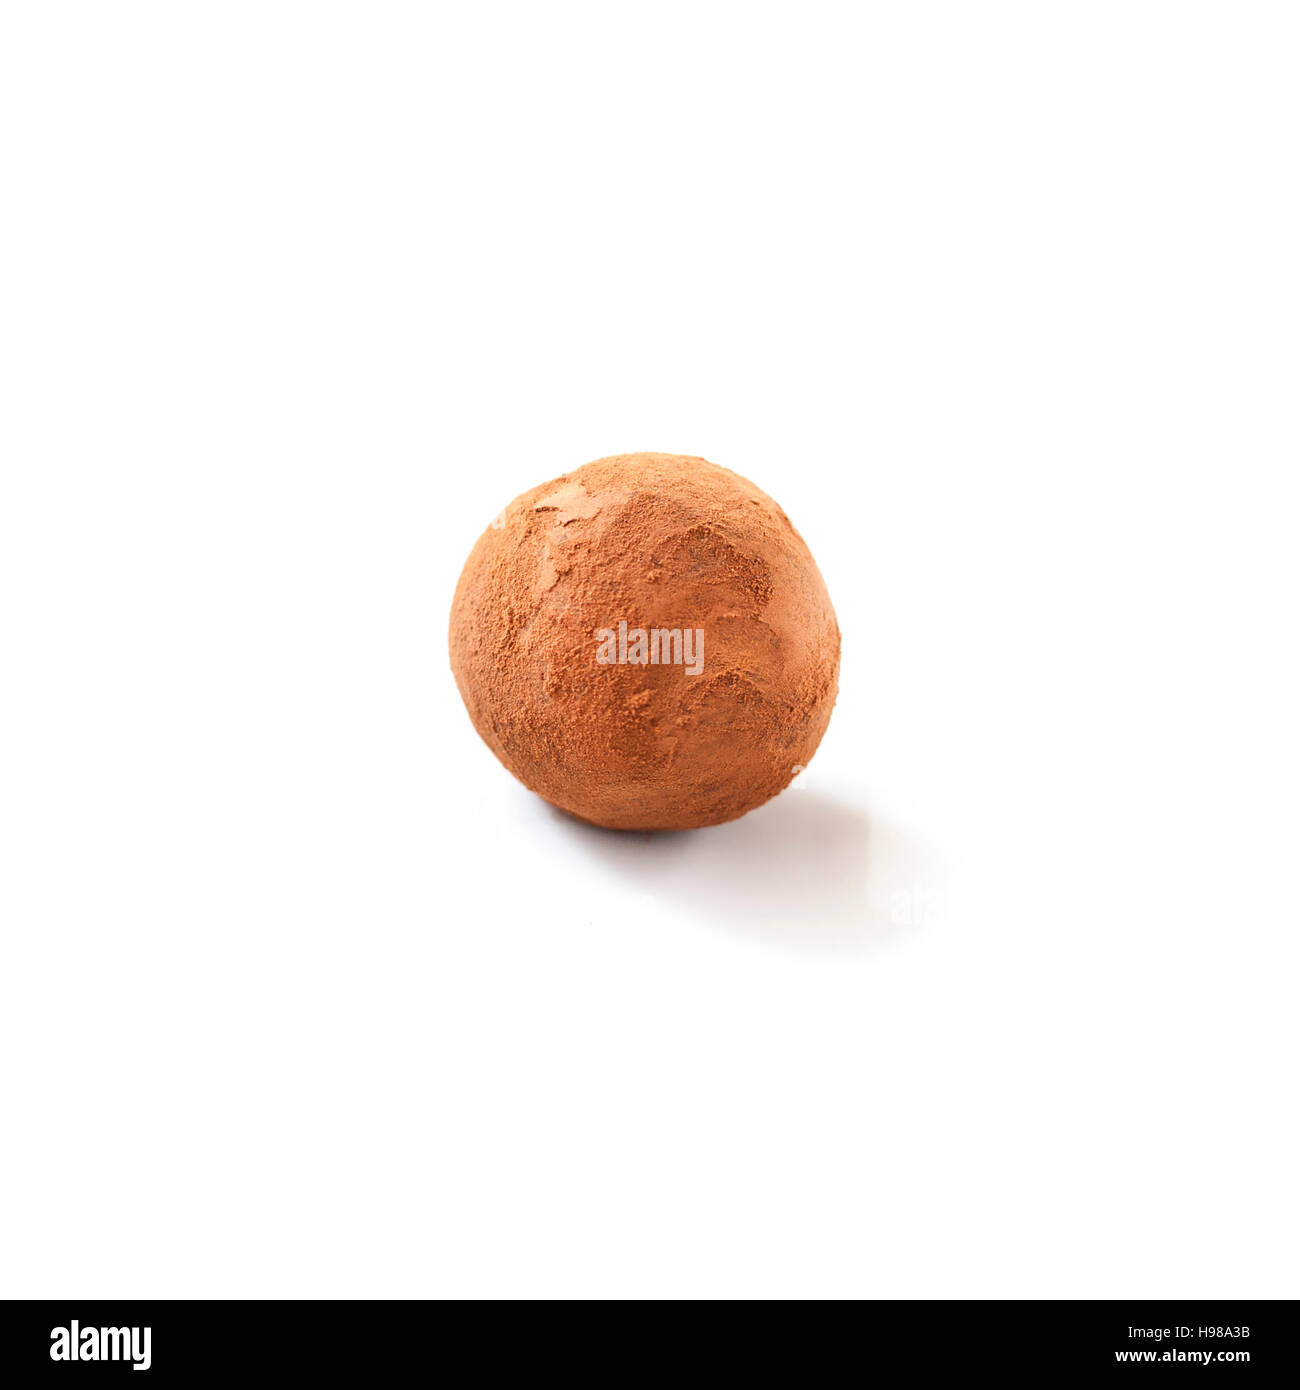 Single Chocolate Truffle dusted in cocoa powder, on White Background - Stock Image